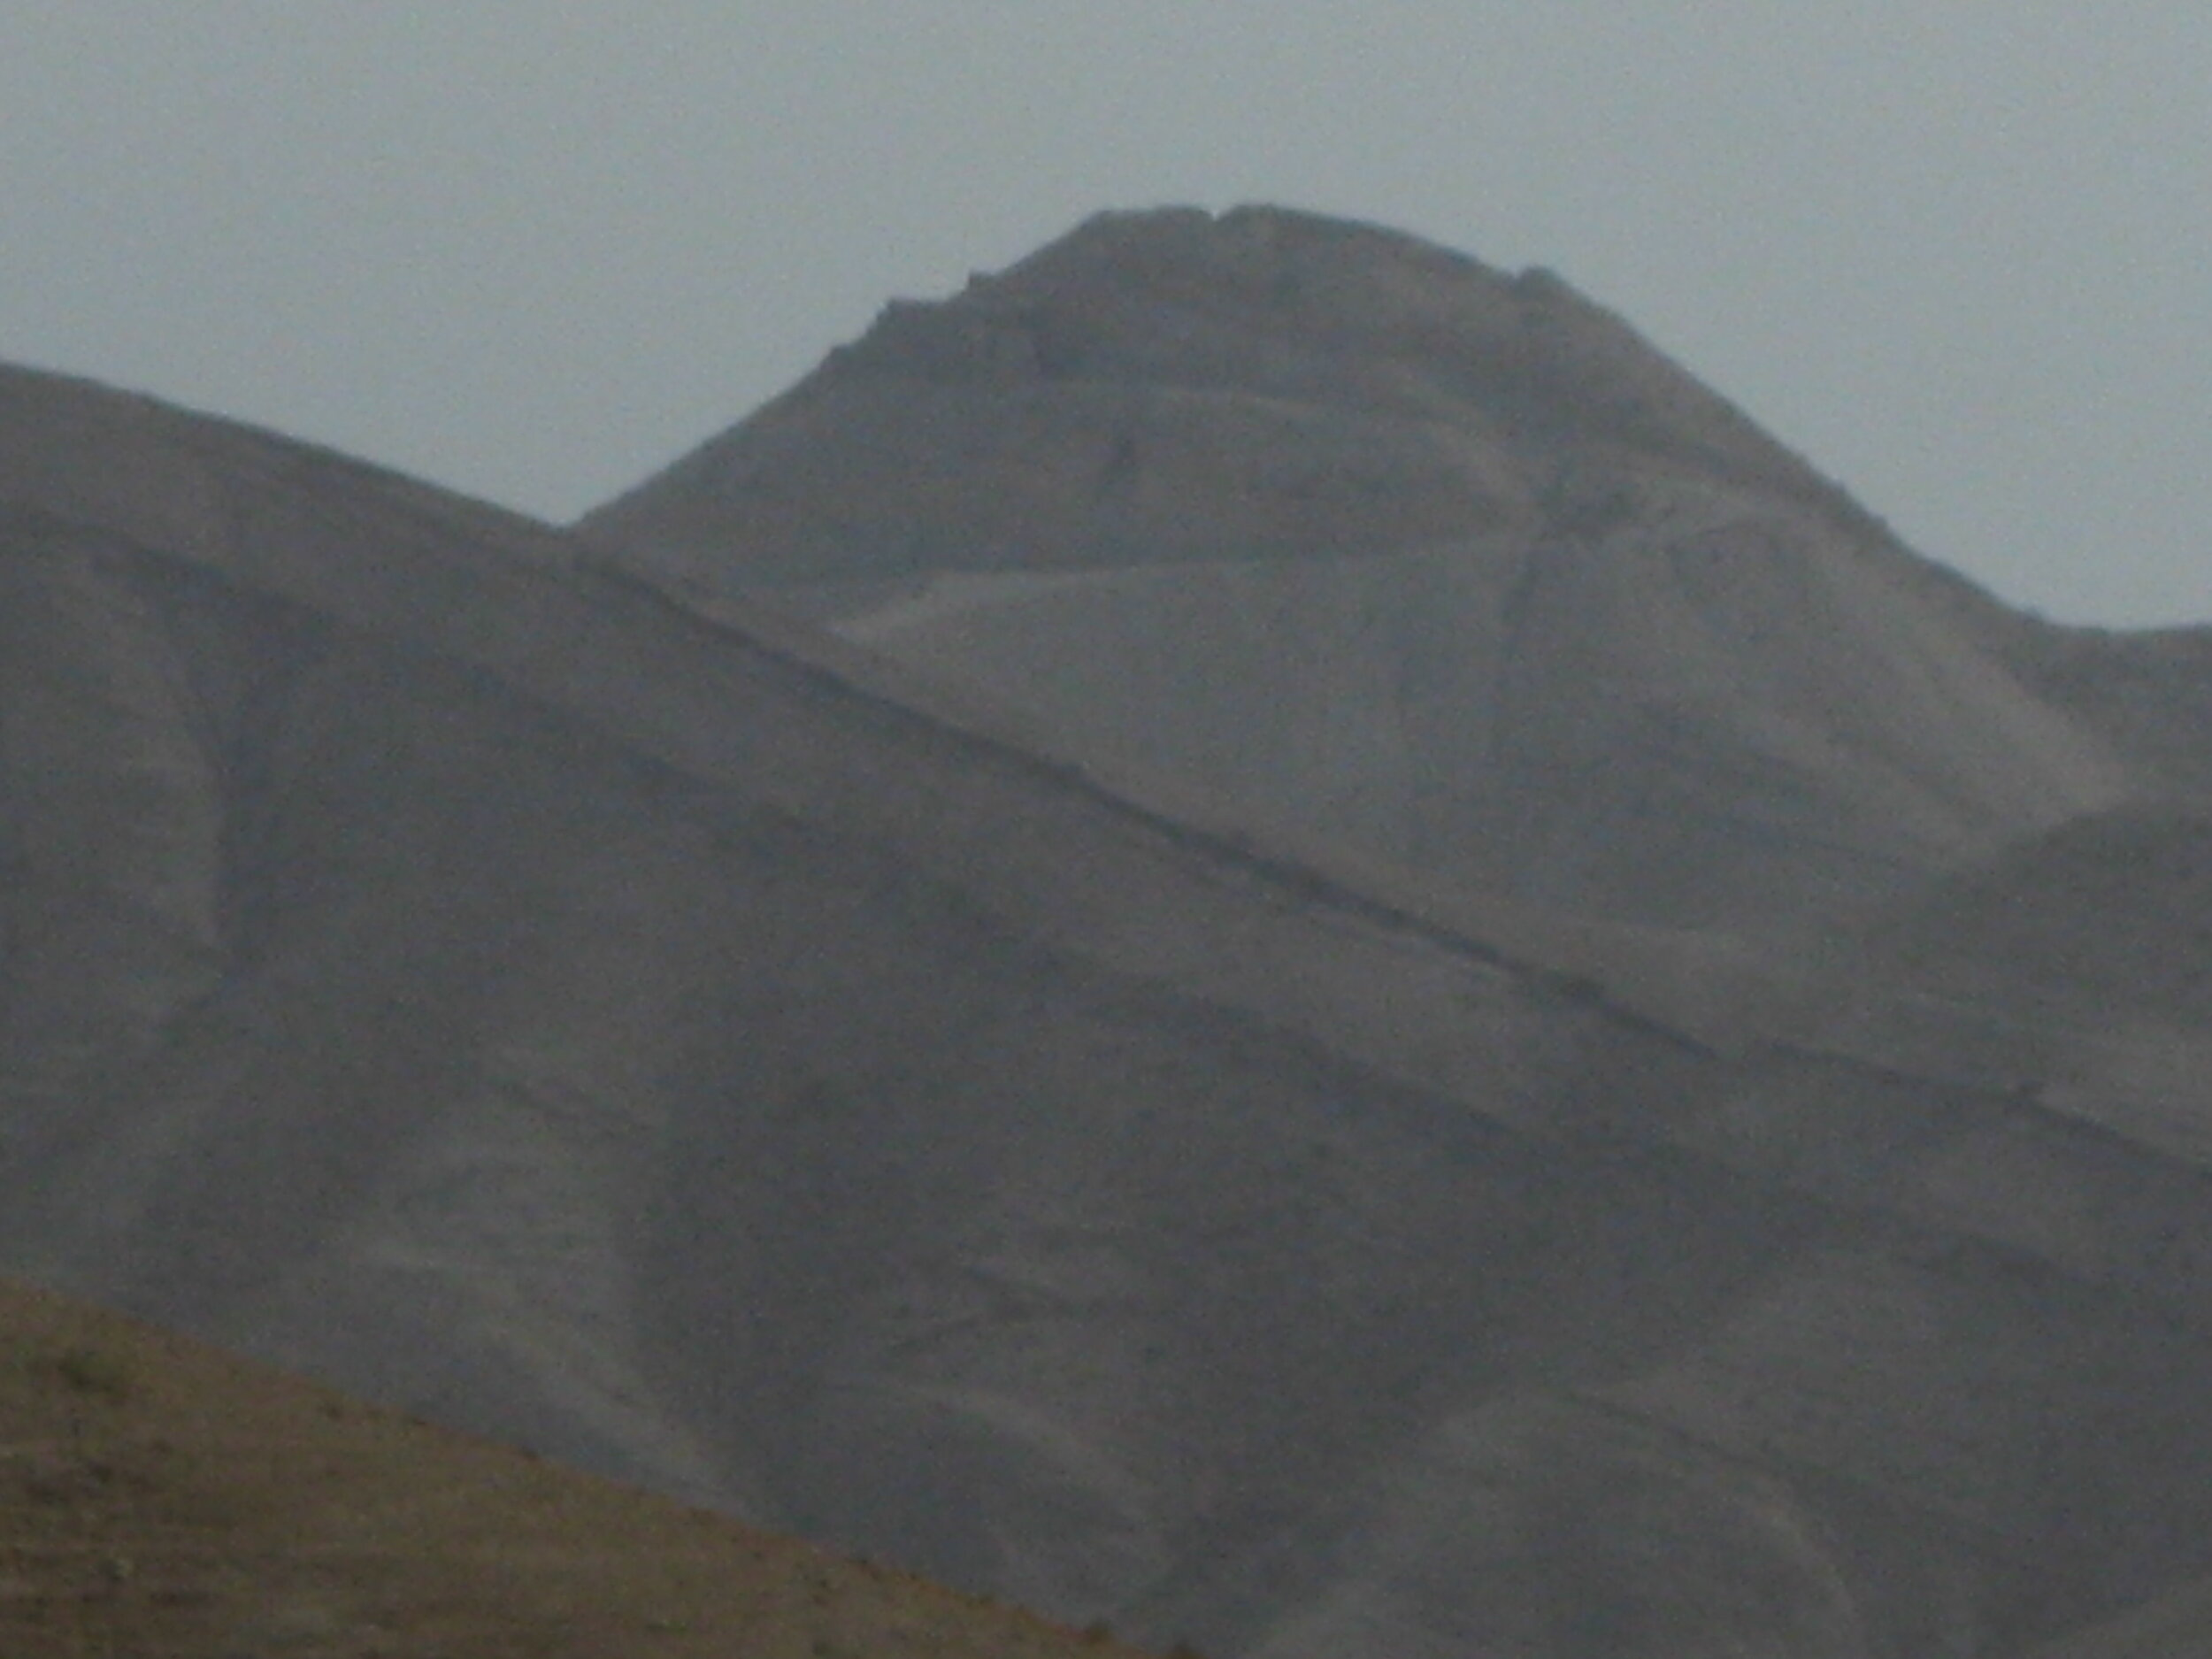 A mountain near the Jordan River.